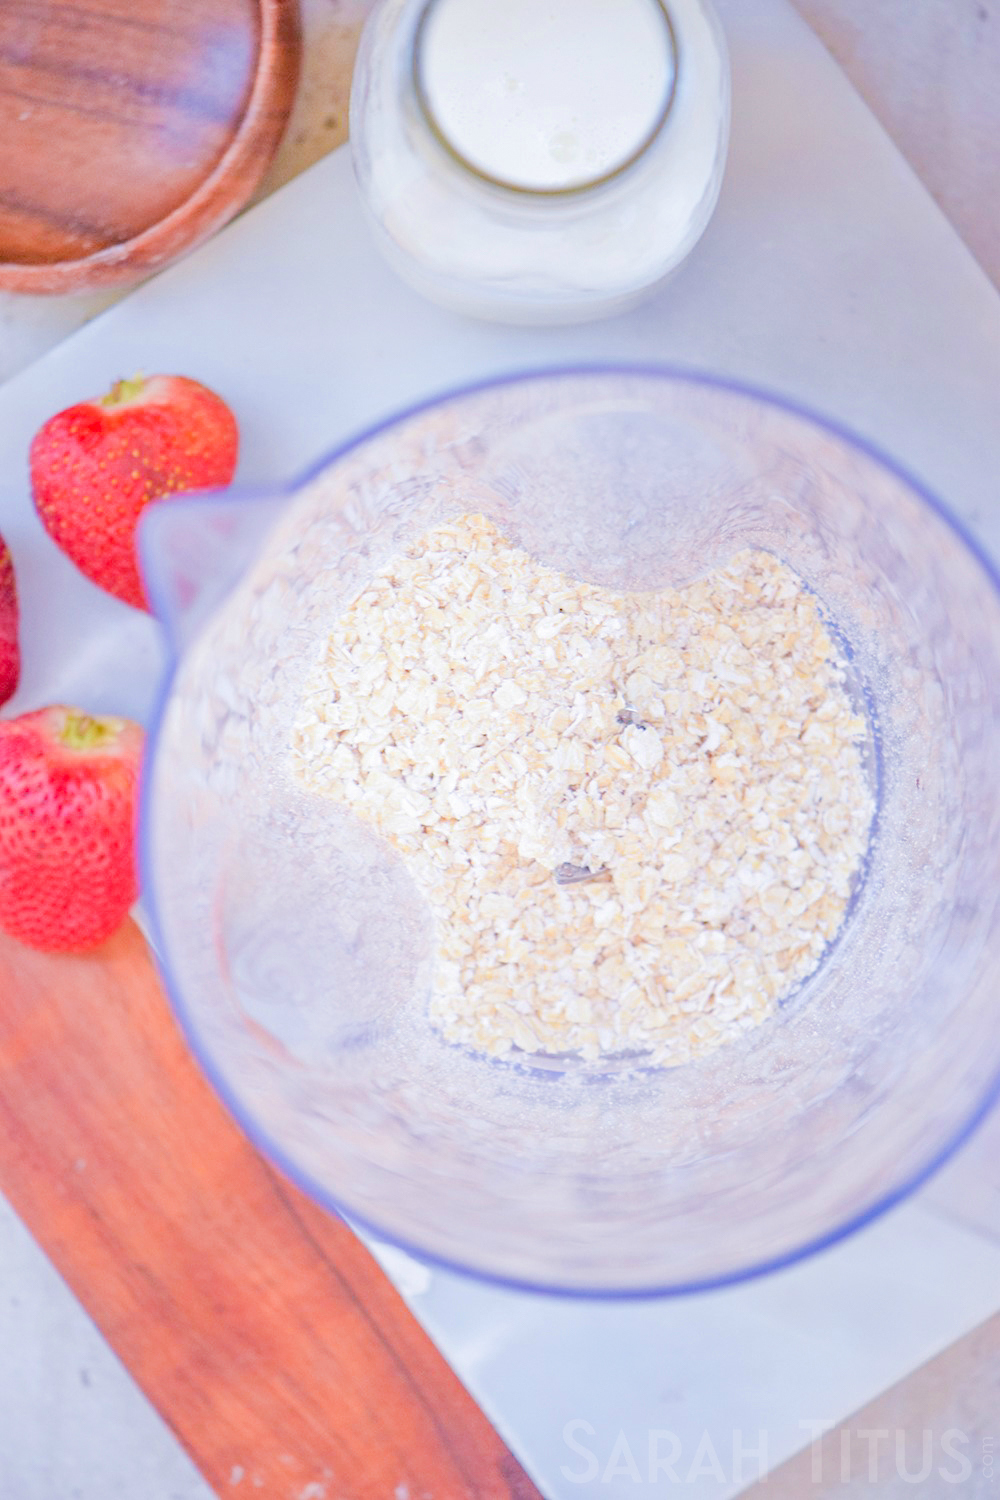 What to do with those flavorless oatmeal packets no one will eat- make this delicious Strawberry Breakfast Milkshake!